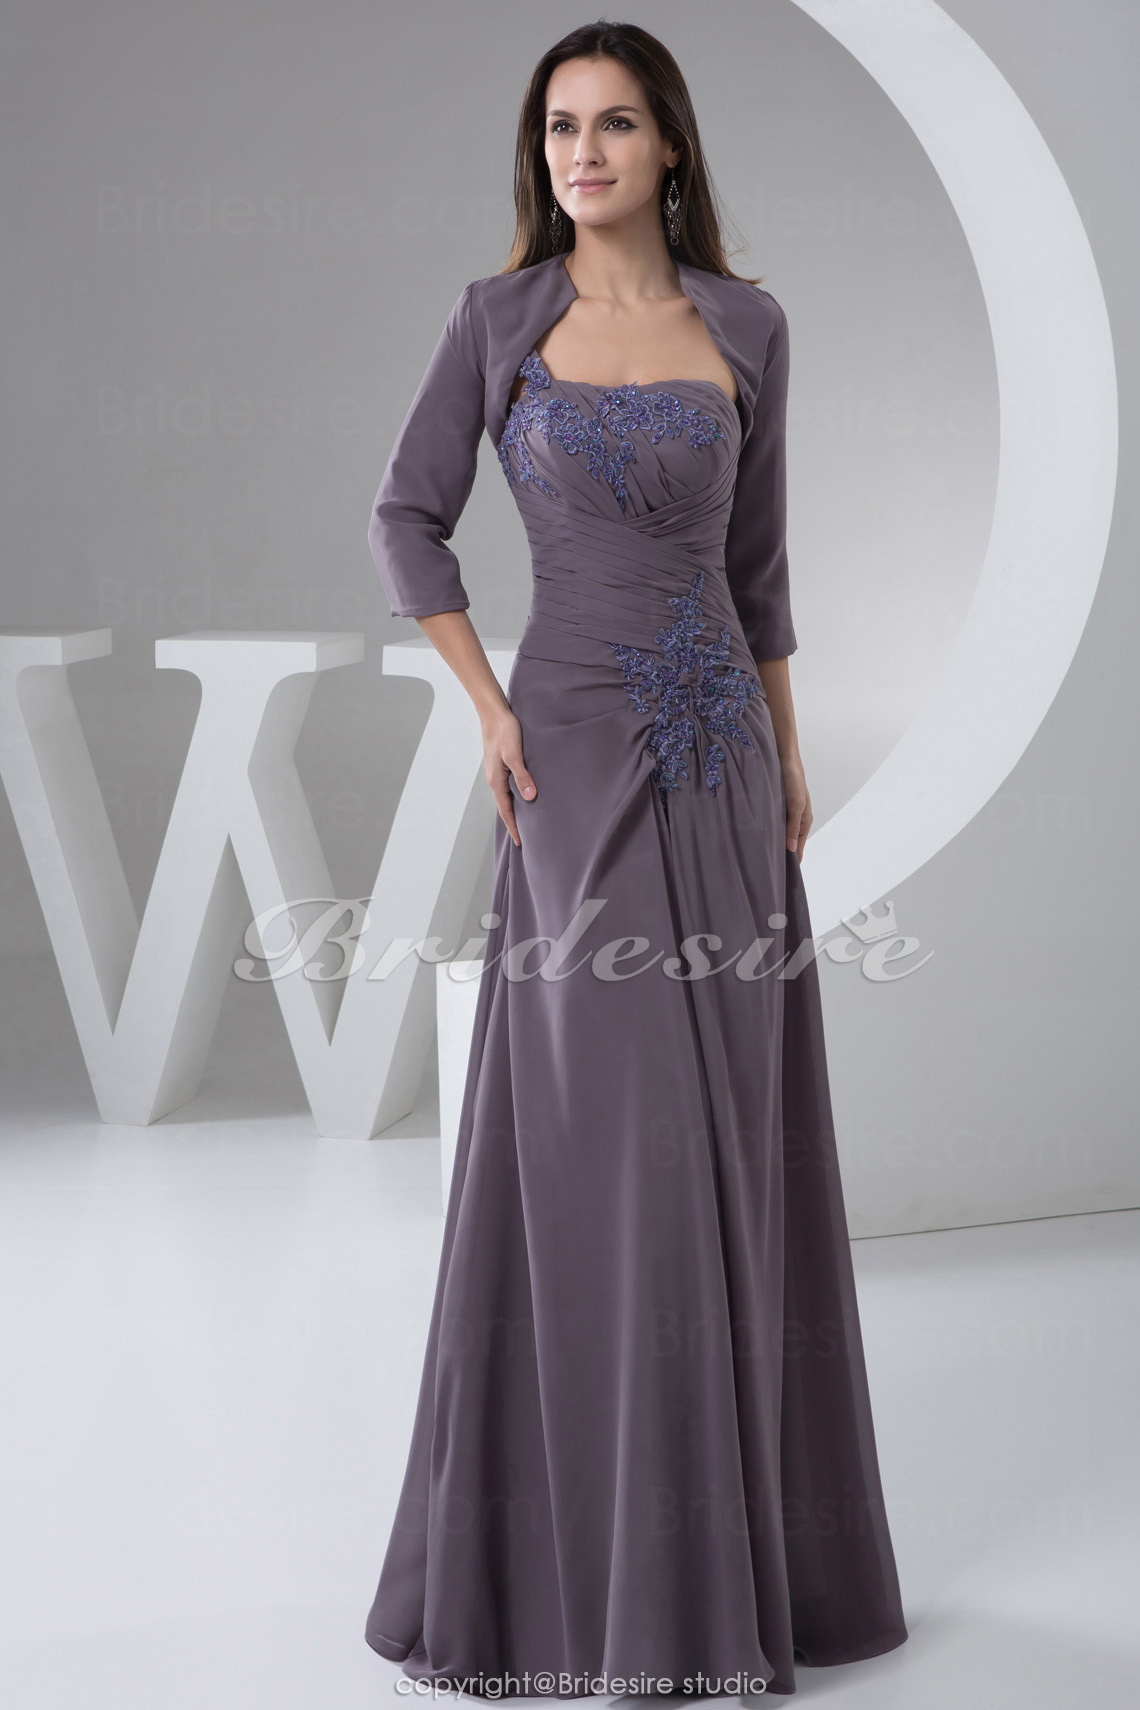 A-line One Shoulder Floor-length Sleeveless Chiffon Mother of the Bride Dress